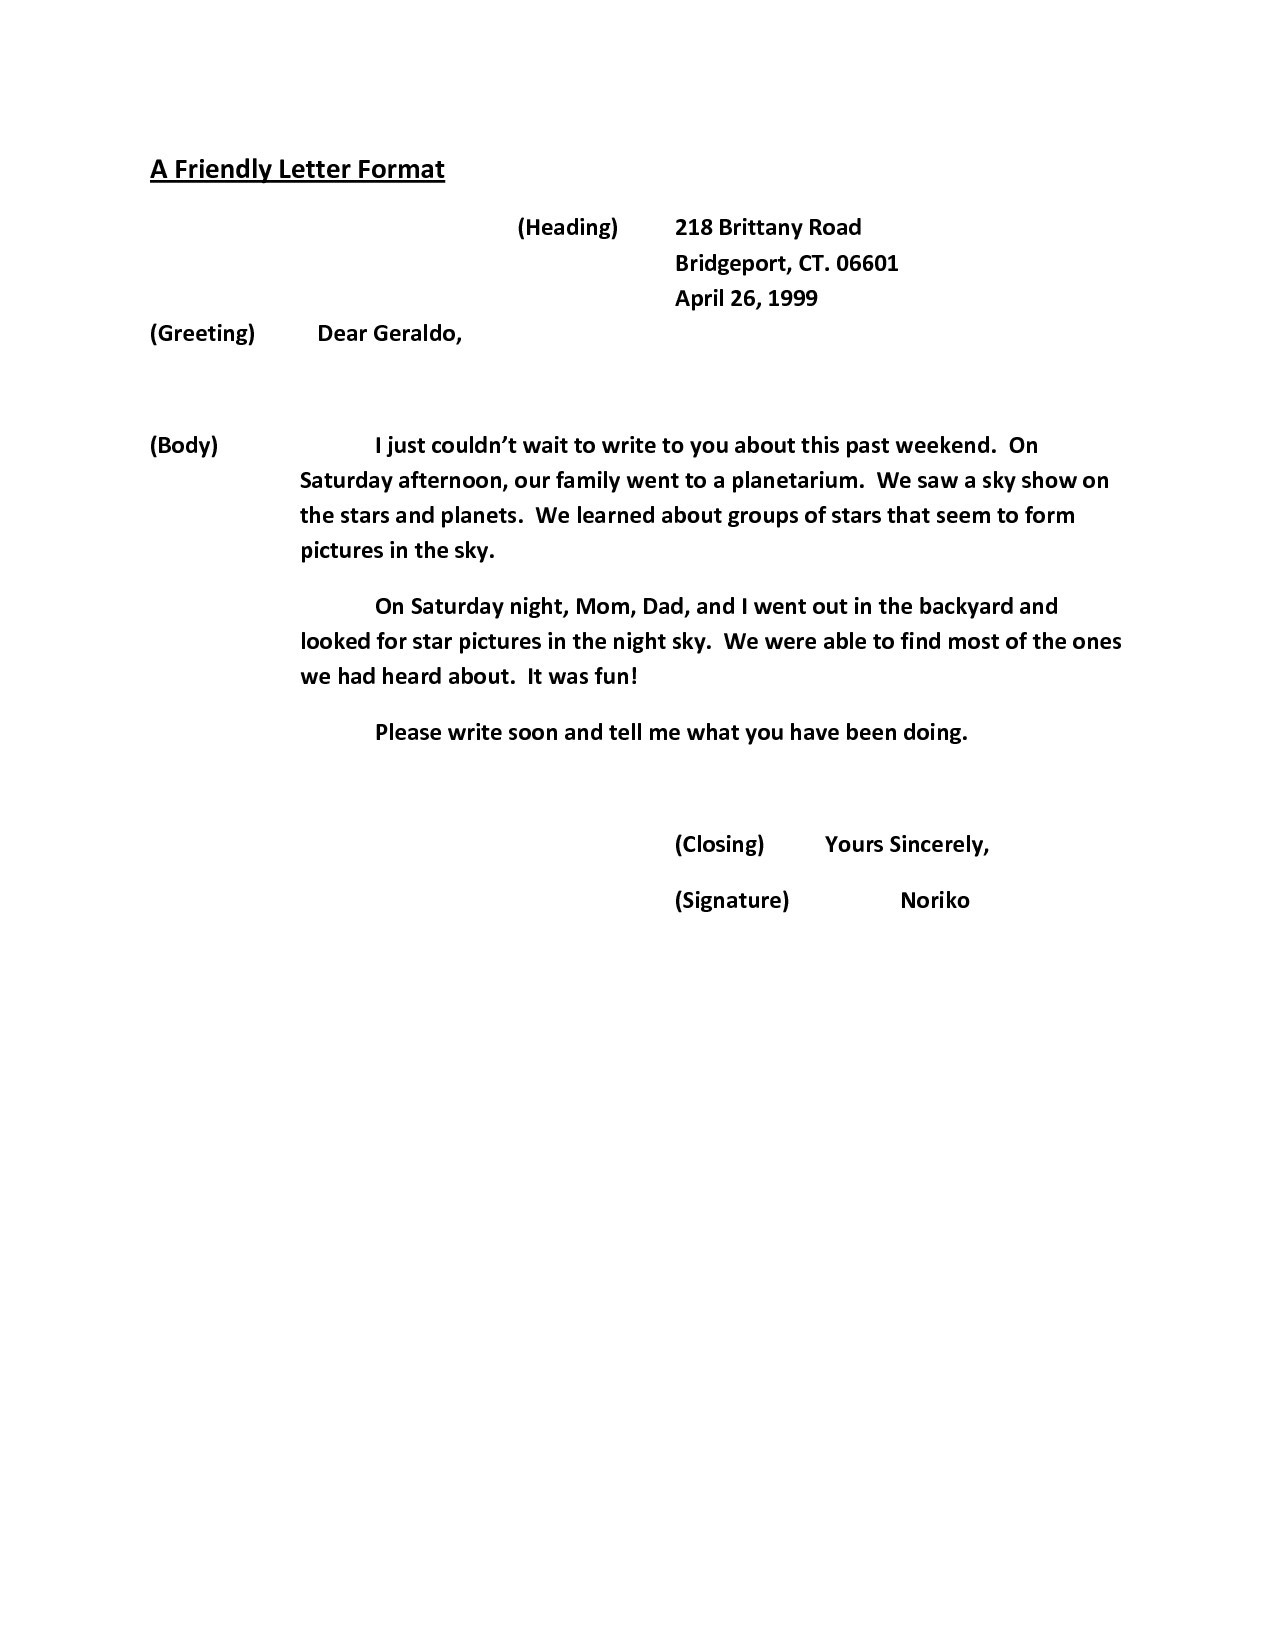 Friendly Letter Format Grade 6 New Friendly Letter Format Heading regarding Friendly Letter Format Heading 20891